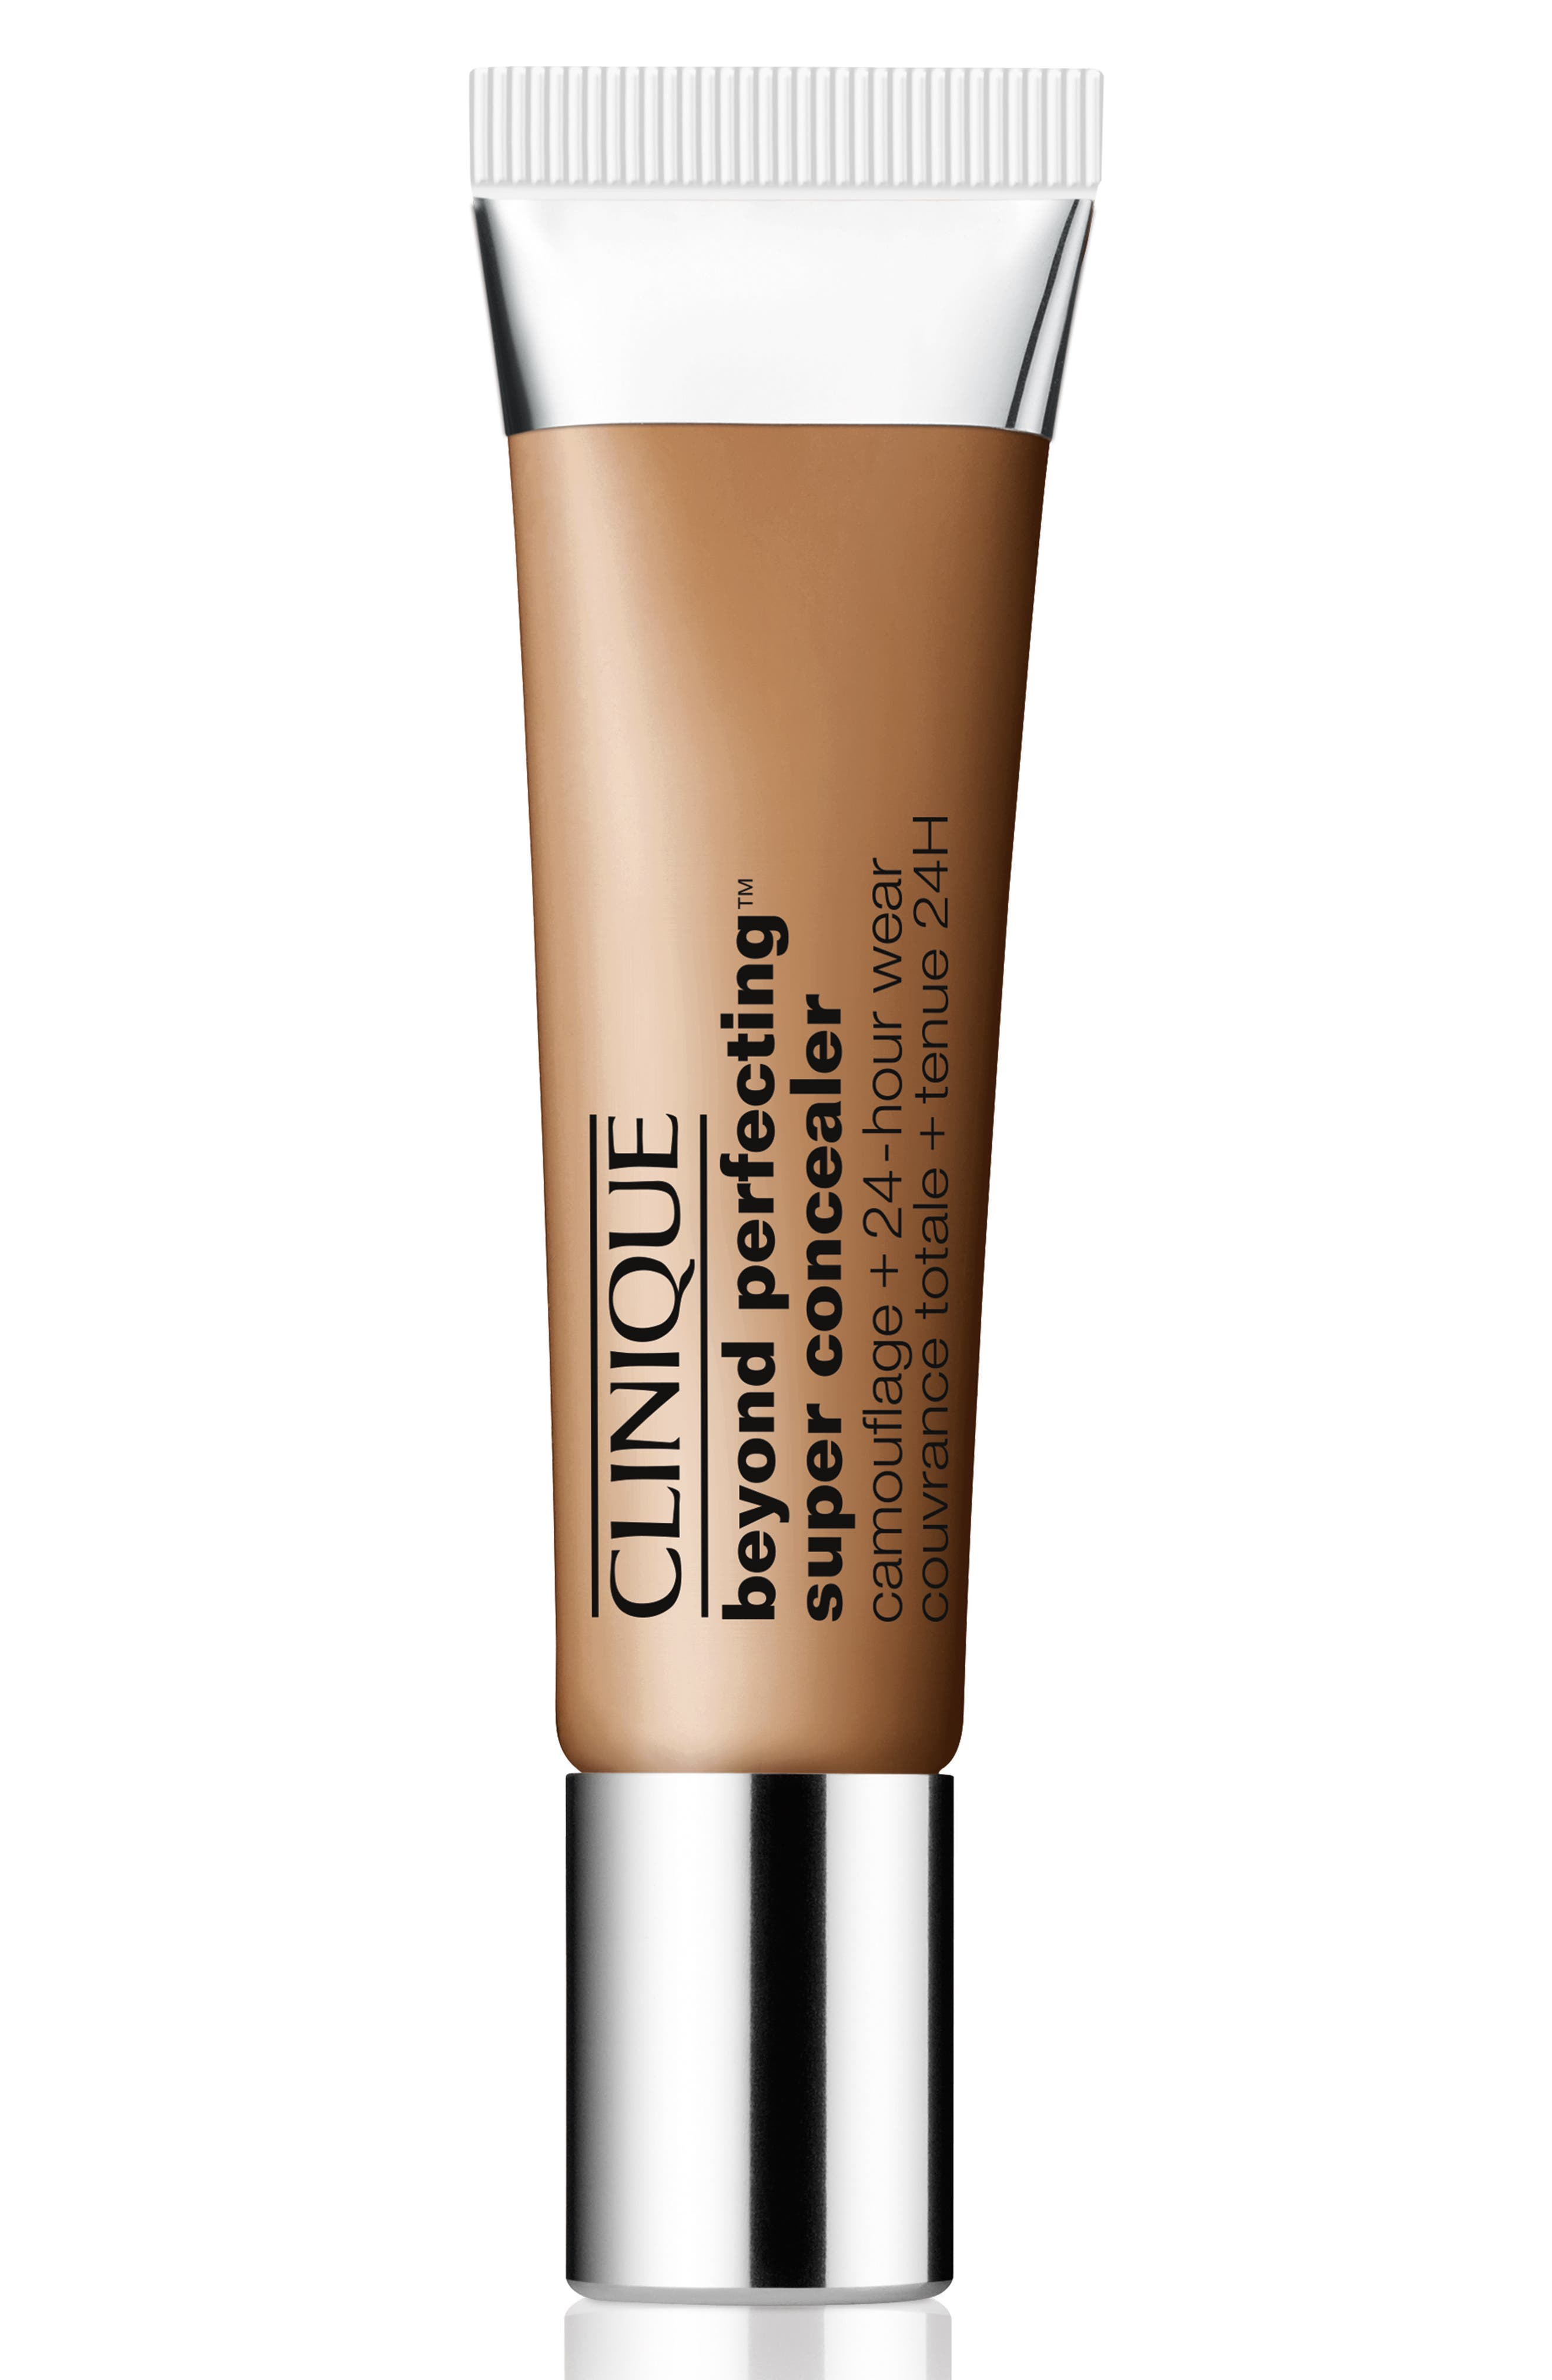 Beyond Perfecting Super Concealer Camouflage + 24-Hour Wear,                             Main thumbnail 1, color,                             DEEP 26